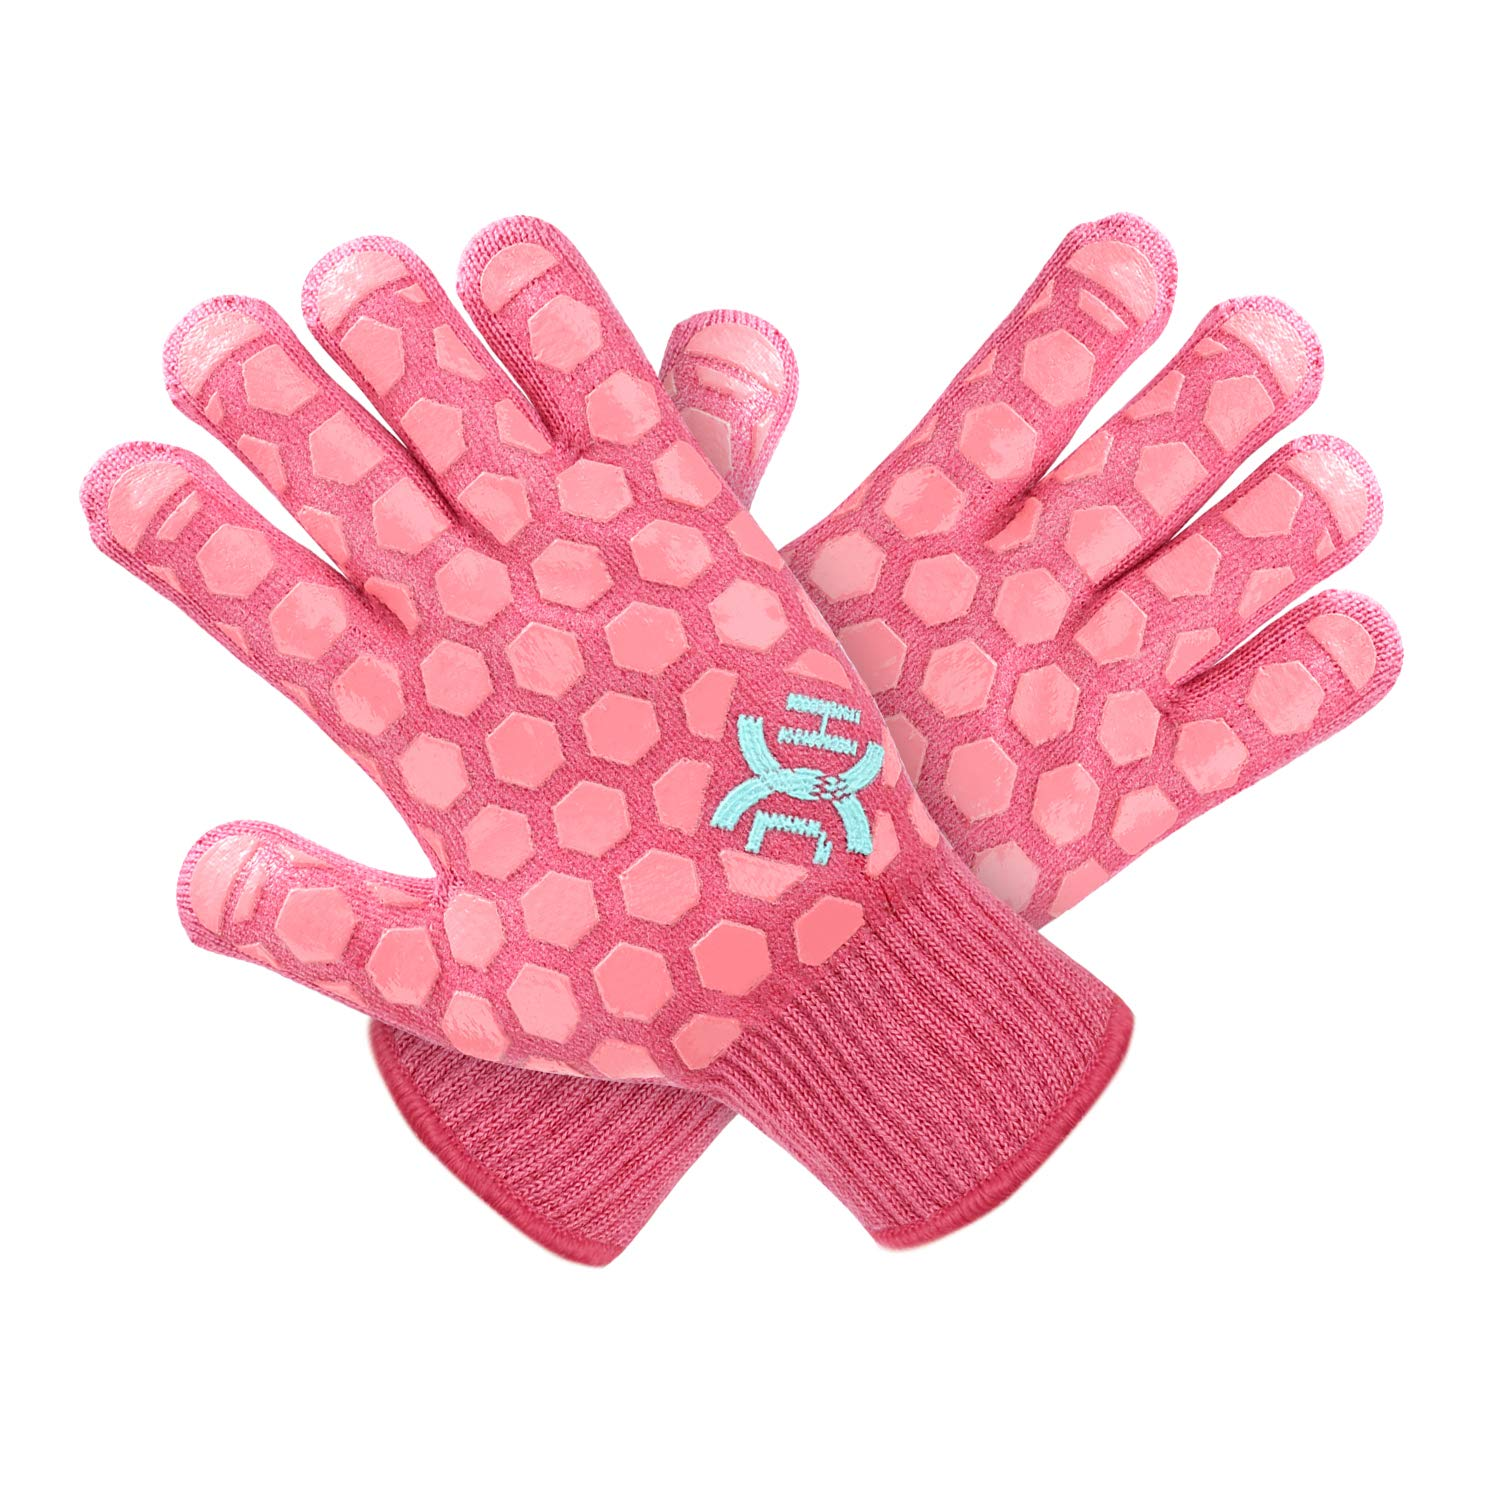 JH Heat Resistant Oven Glove: EN407 Certified 932 °F, 2 Layers Silicone Coating, Coral Shell with Pink Coating, BBQ & Oven Mitts For Cooking, Kitchen, Fireplace, Grilling, 1 Pair, Women Fits All